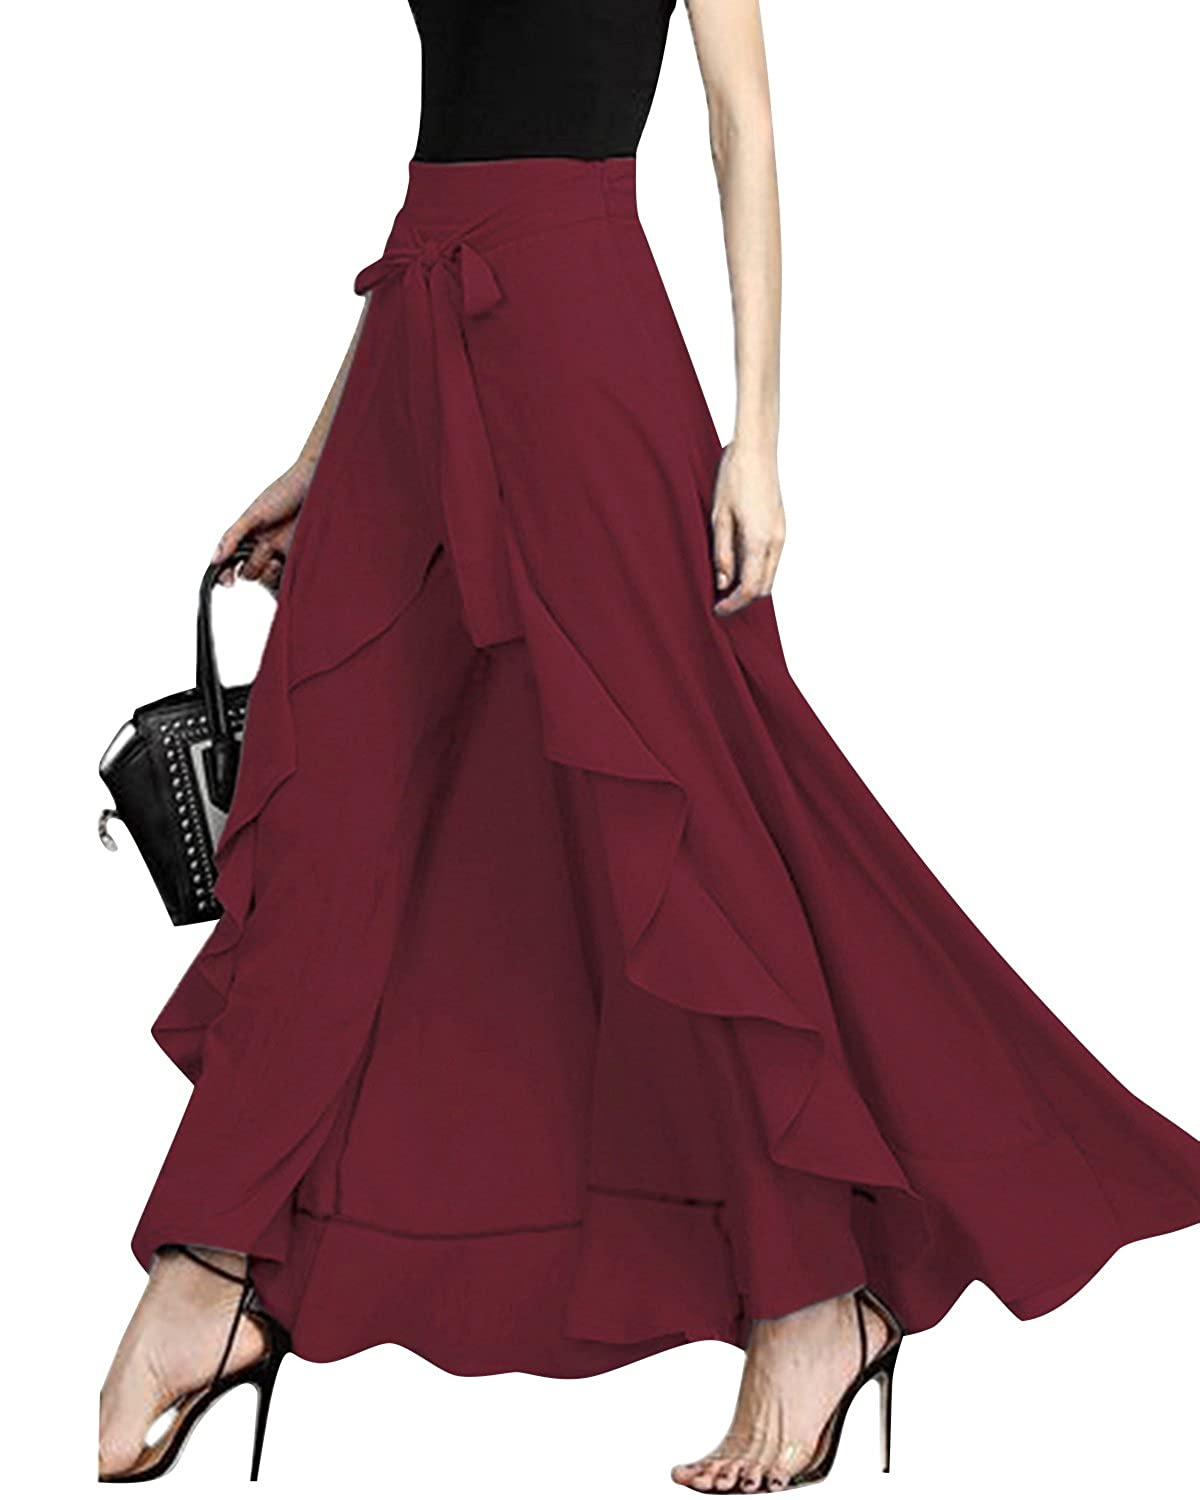 ff75a93475 Features : Long maxi skirts, Chiffon solid tie-waist ruffle dress skirt,  wide leg trousers, loose fitted pants. Occasion: Suit for cocktail Party,  Casual, ...